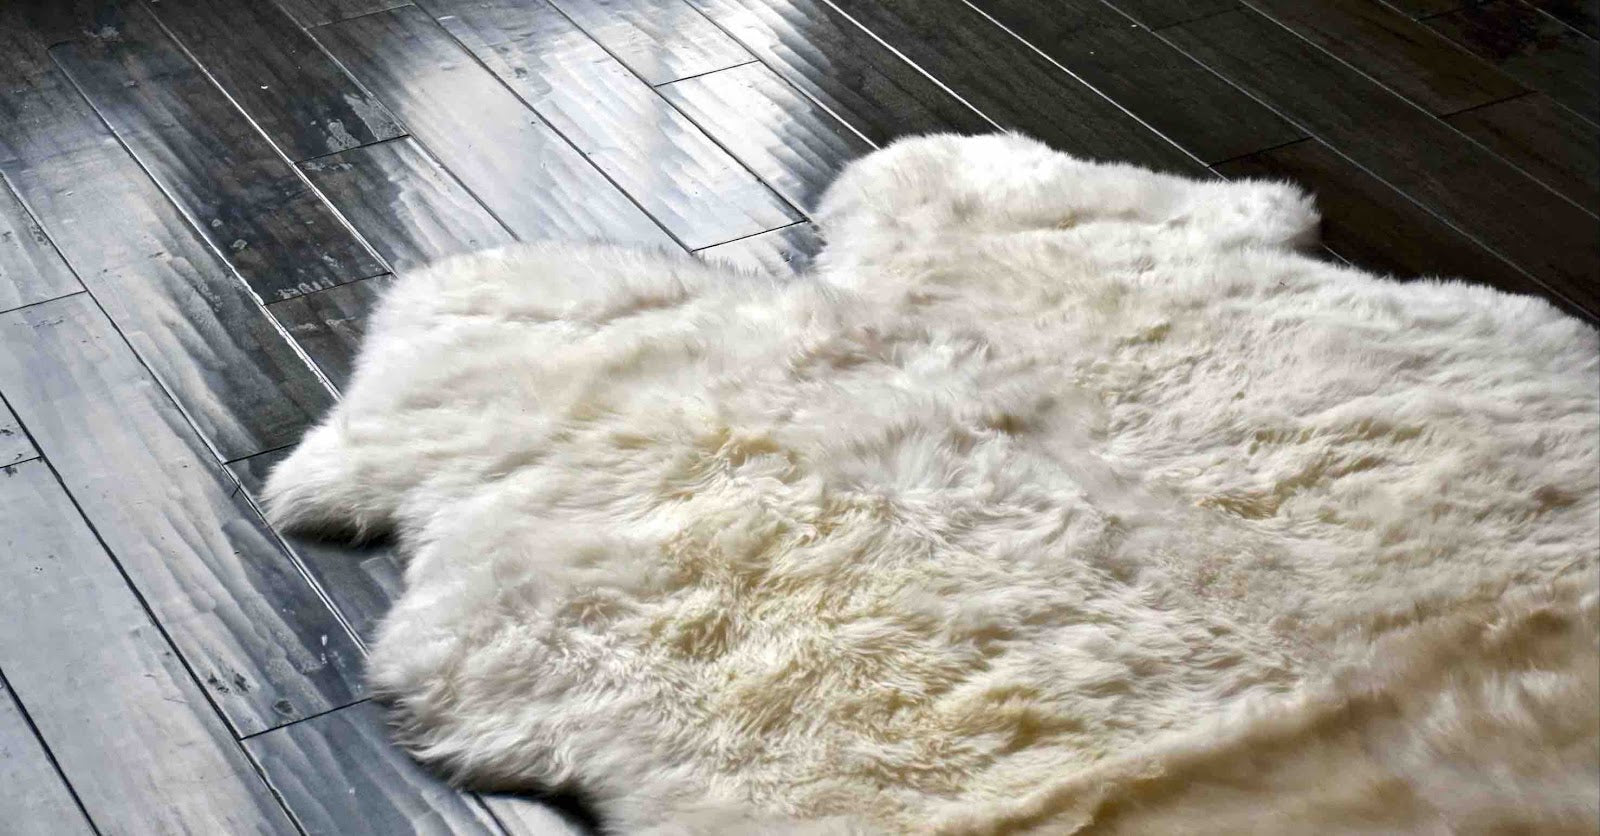 Genuine Sheepskin Rug Cleaning and Care Guide